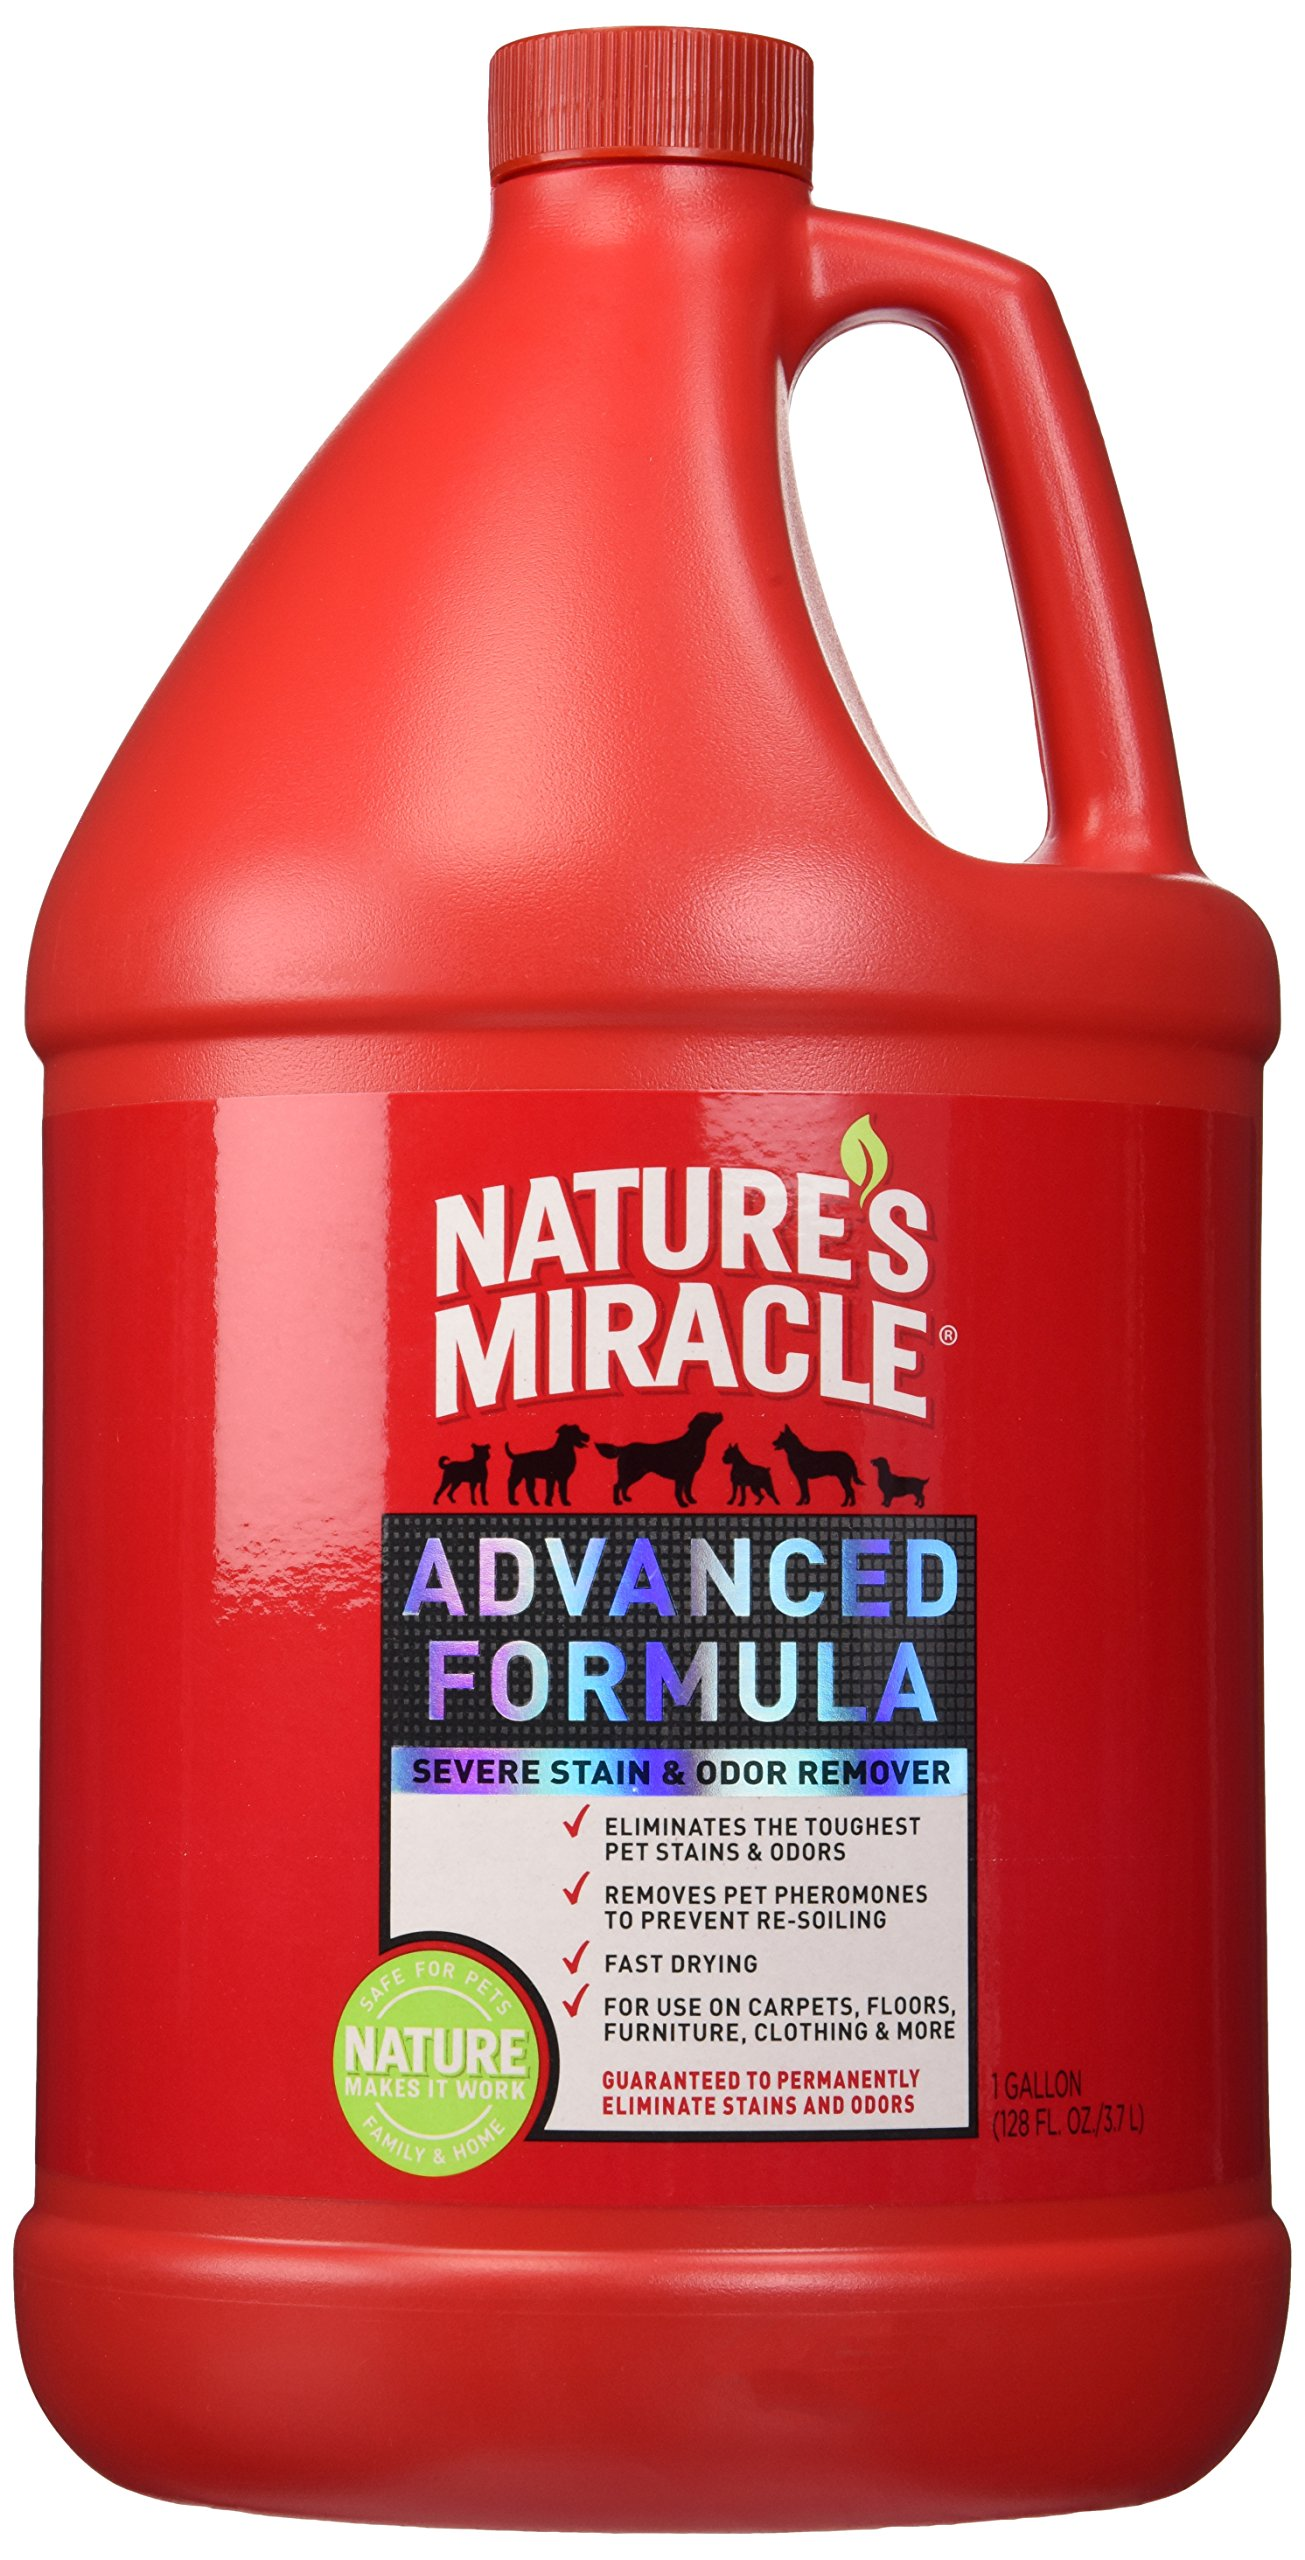 Nature's Miracle Advanced Stain and Odor Remover Gallon by Nature's Miracle